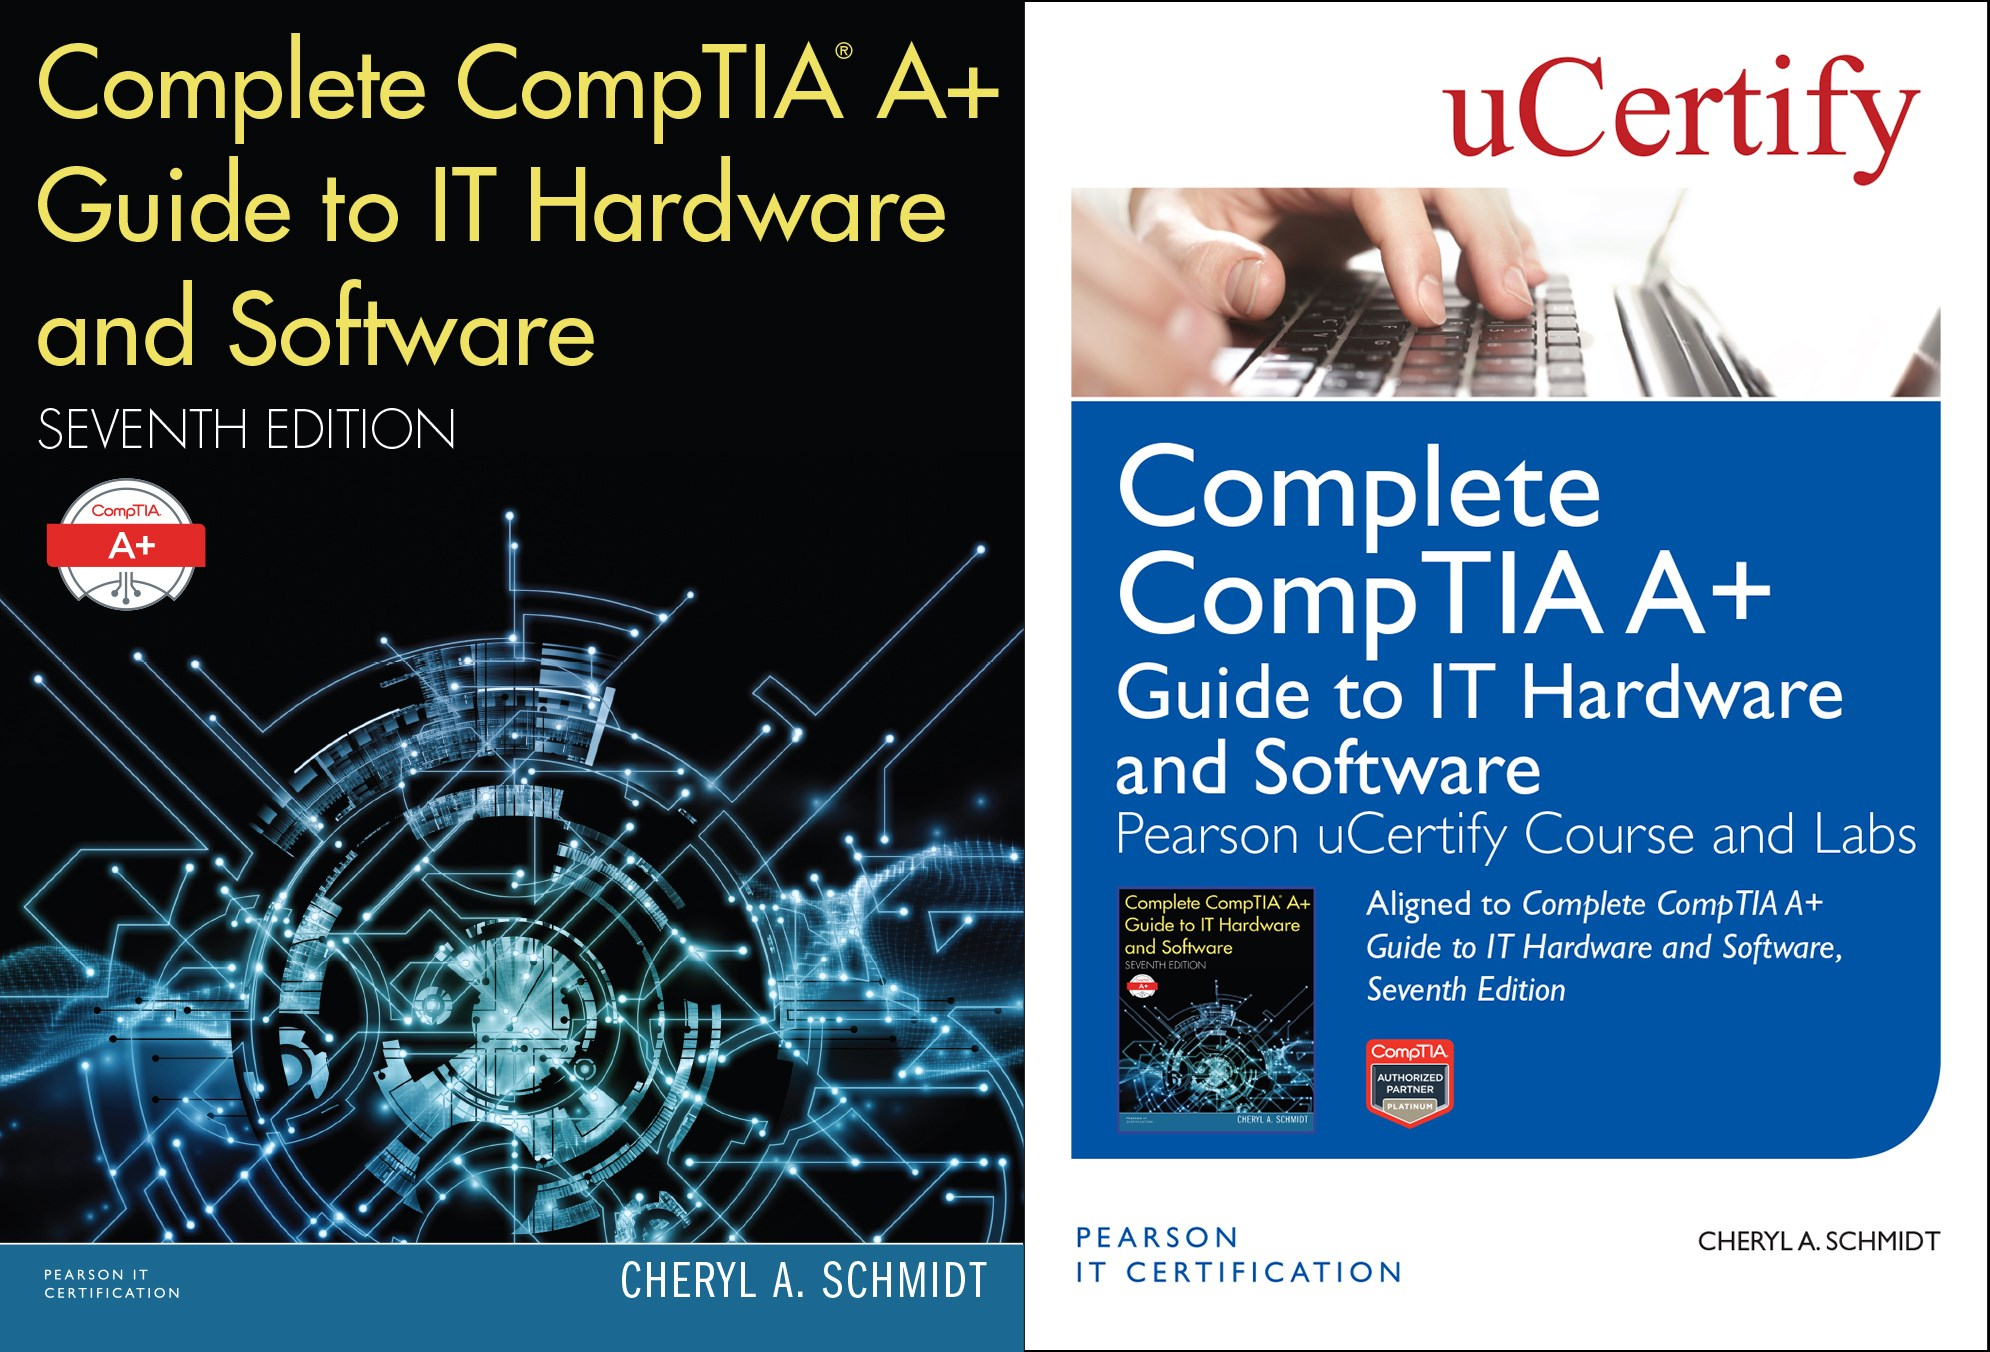 Complete CompTIA A+ Guide to IT Hardware and Software, Seventh Edition TextBook and Pearson uCertify Course and Labs Bundle